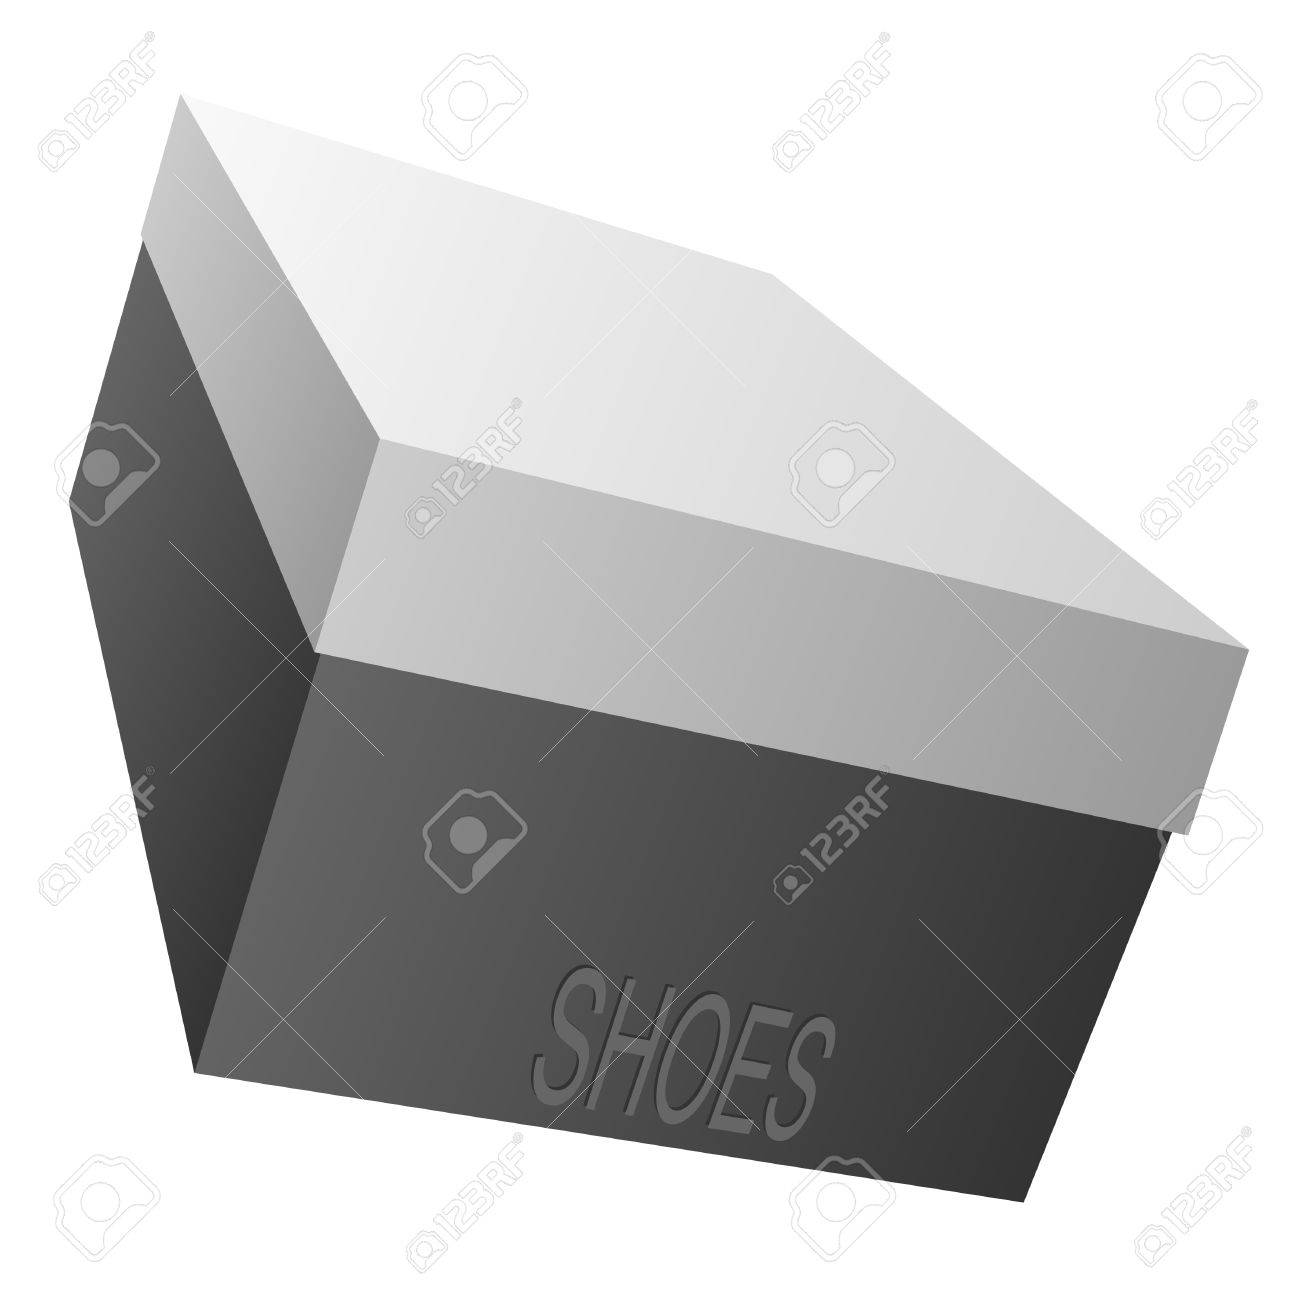 Black box for footwear on a white background. Stock Vector - 9811197